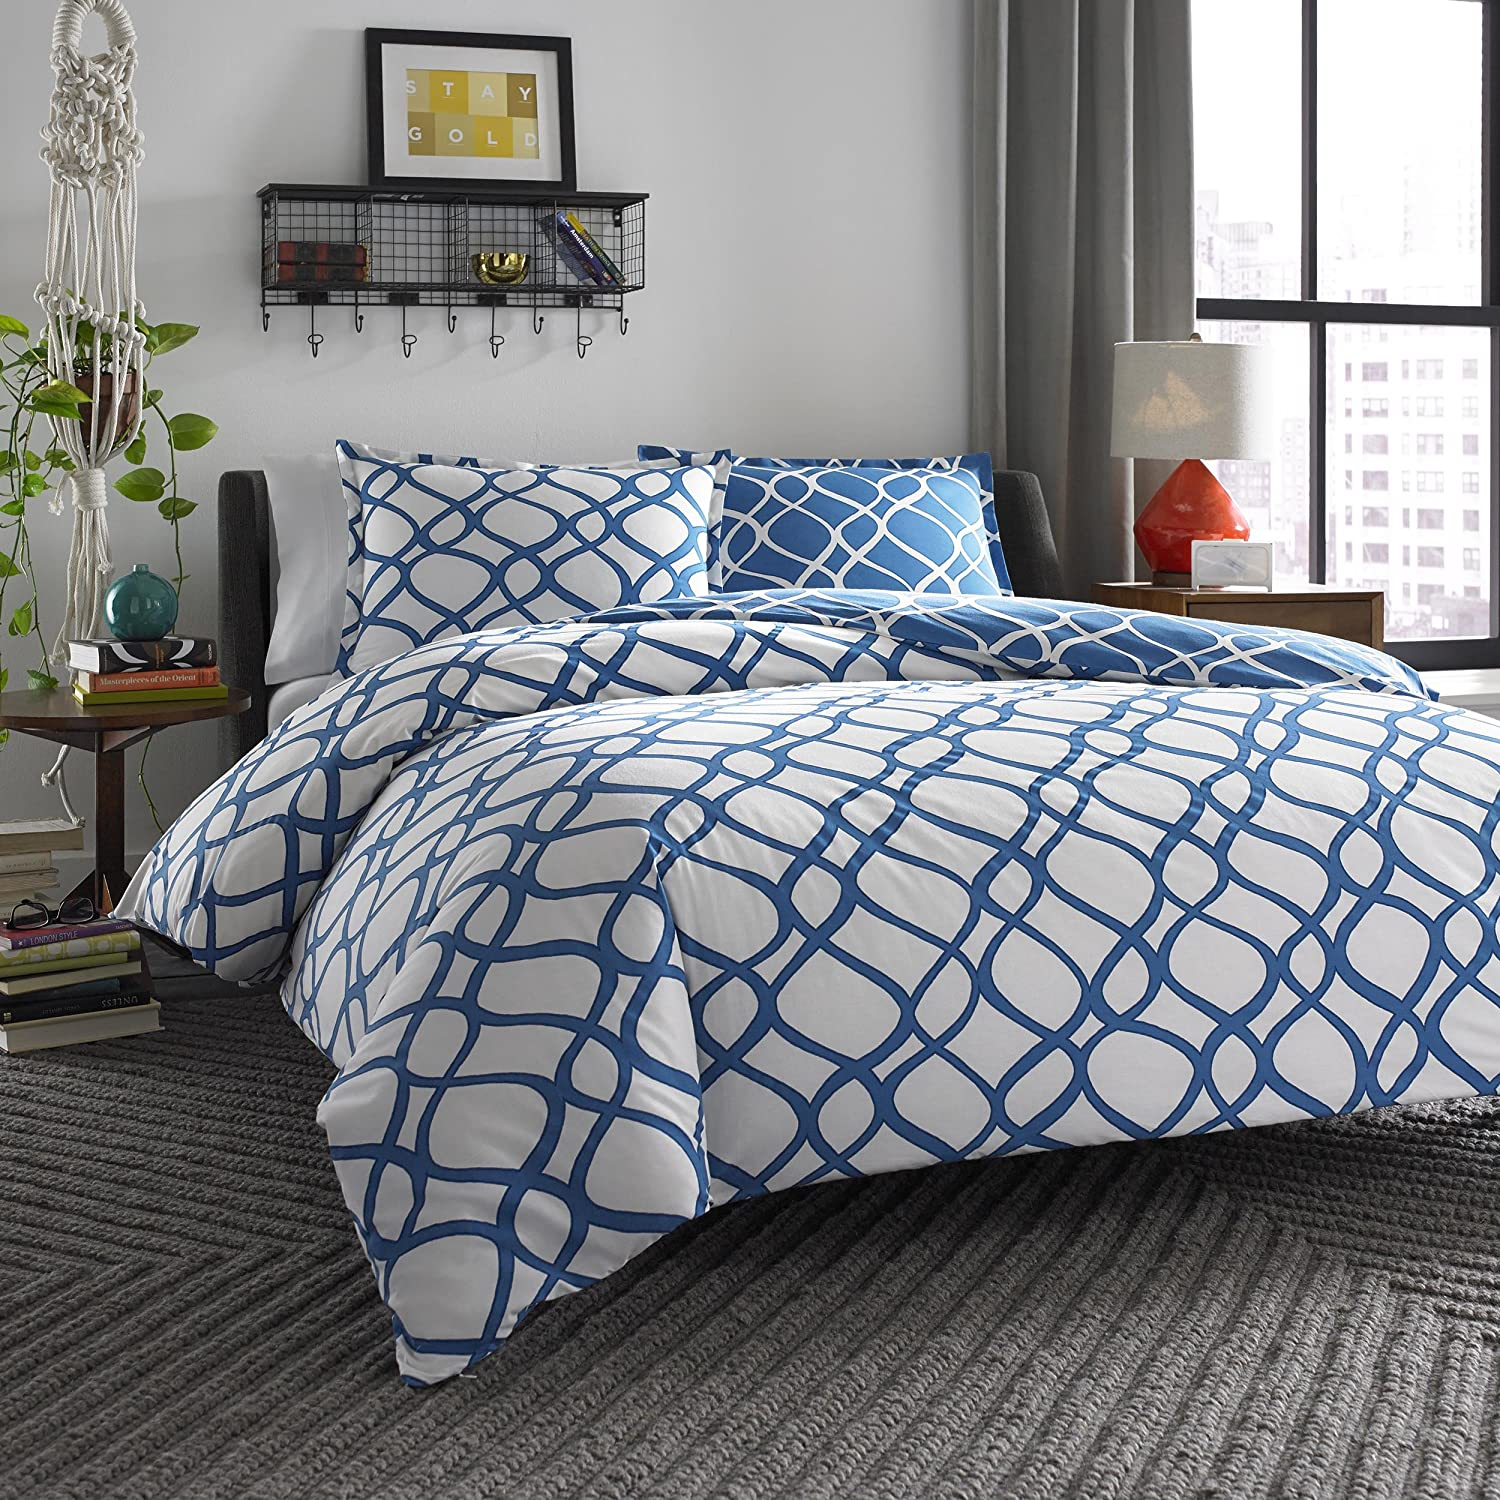 city scene bedding sets  ease bedding with style - city scene arlo reversible comforter set blue king